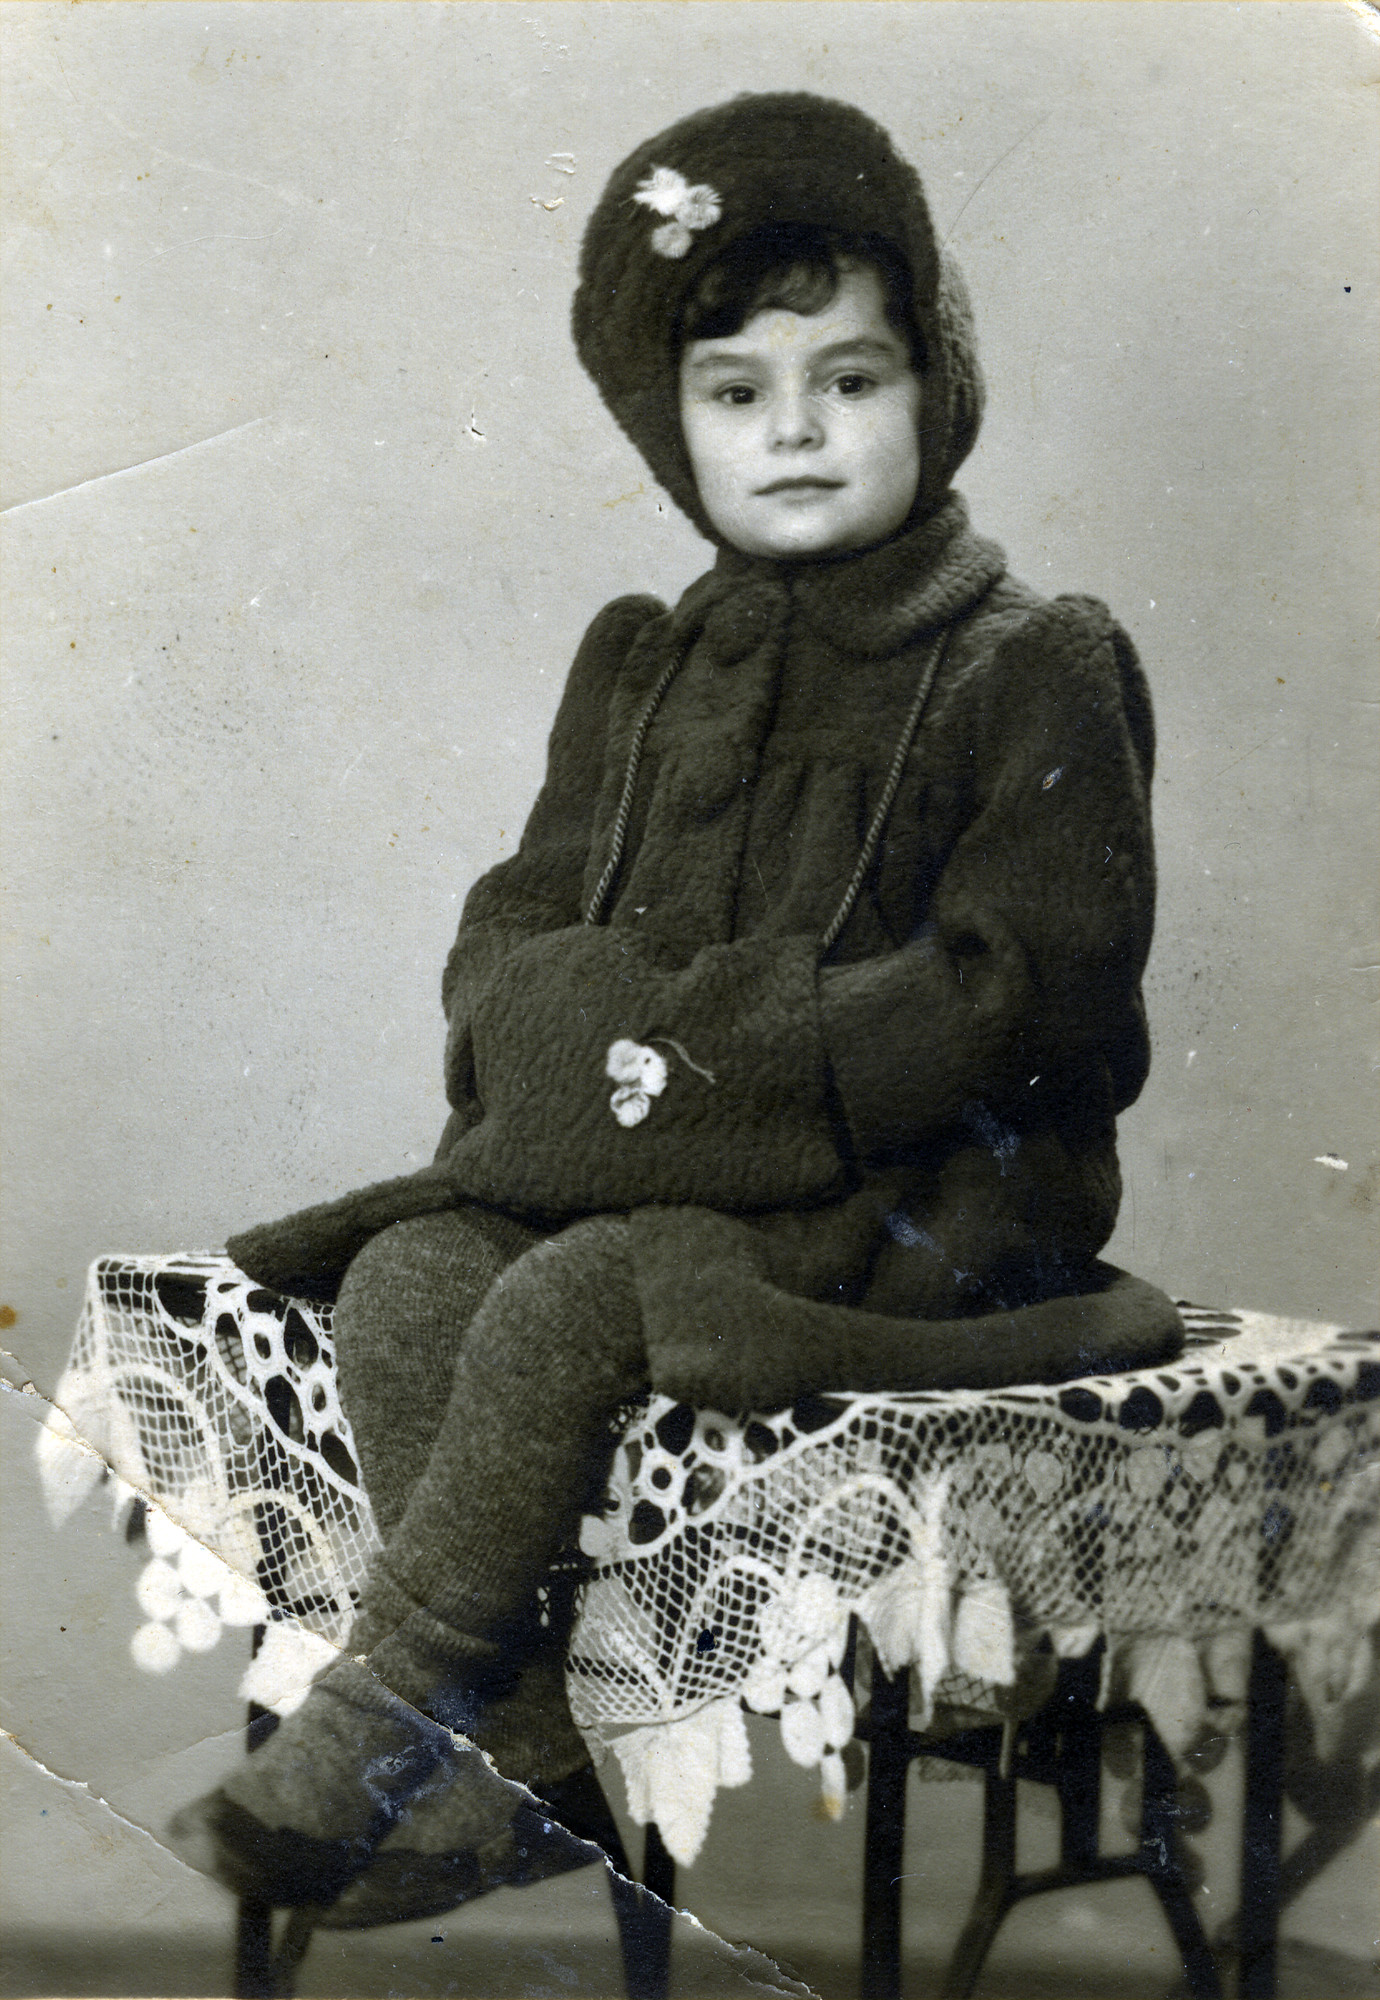 Basia Szrajer poses for a studio portrait in winter clothing sent from the U.S. Committee.